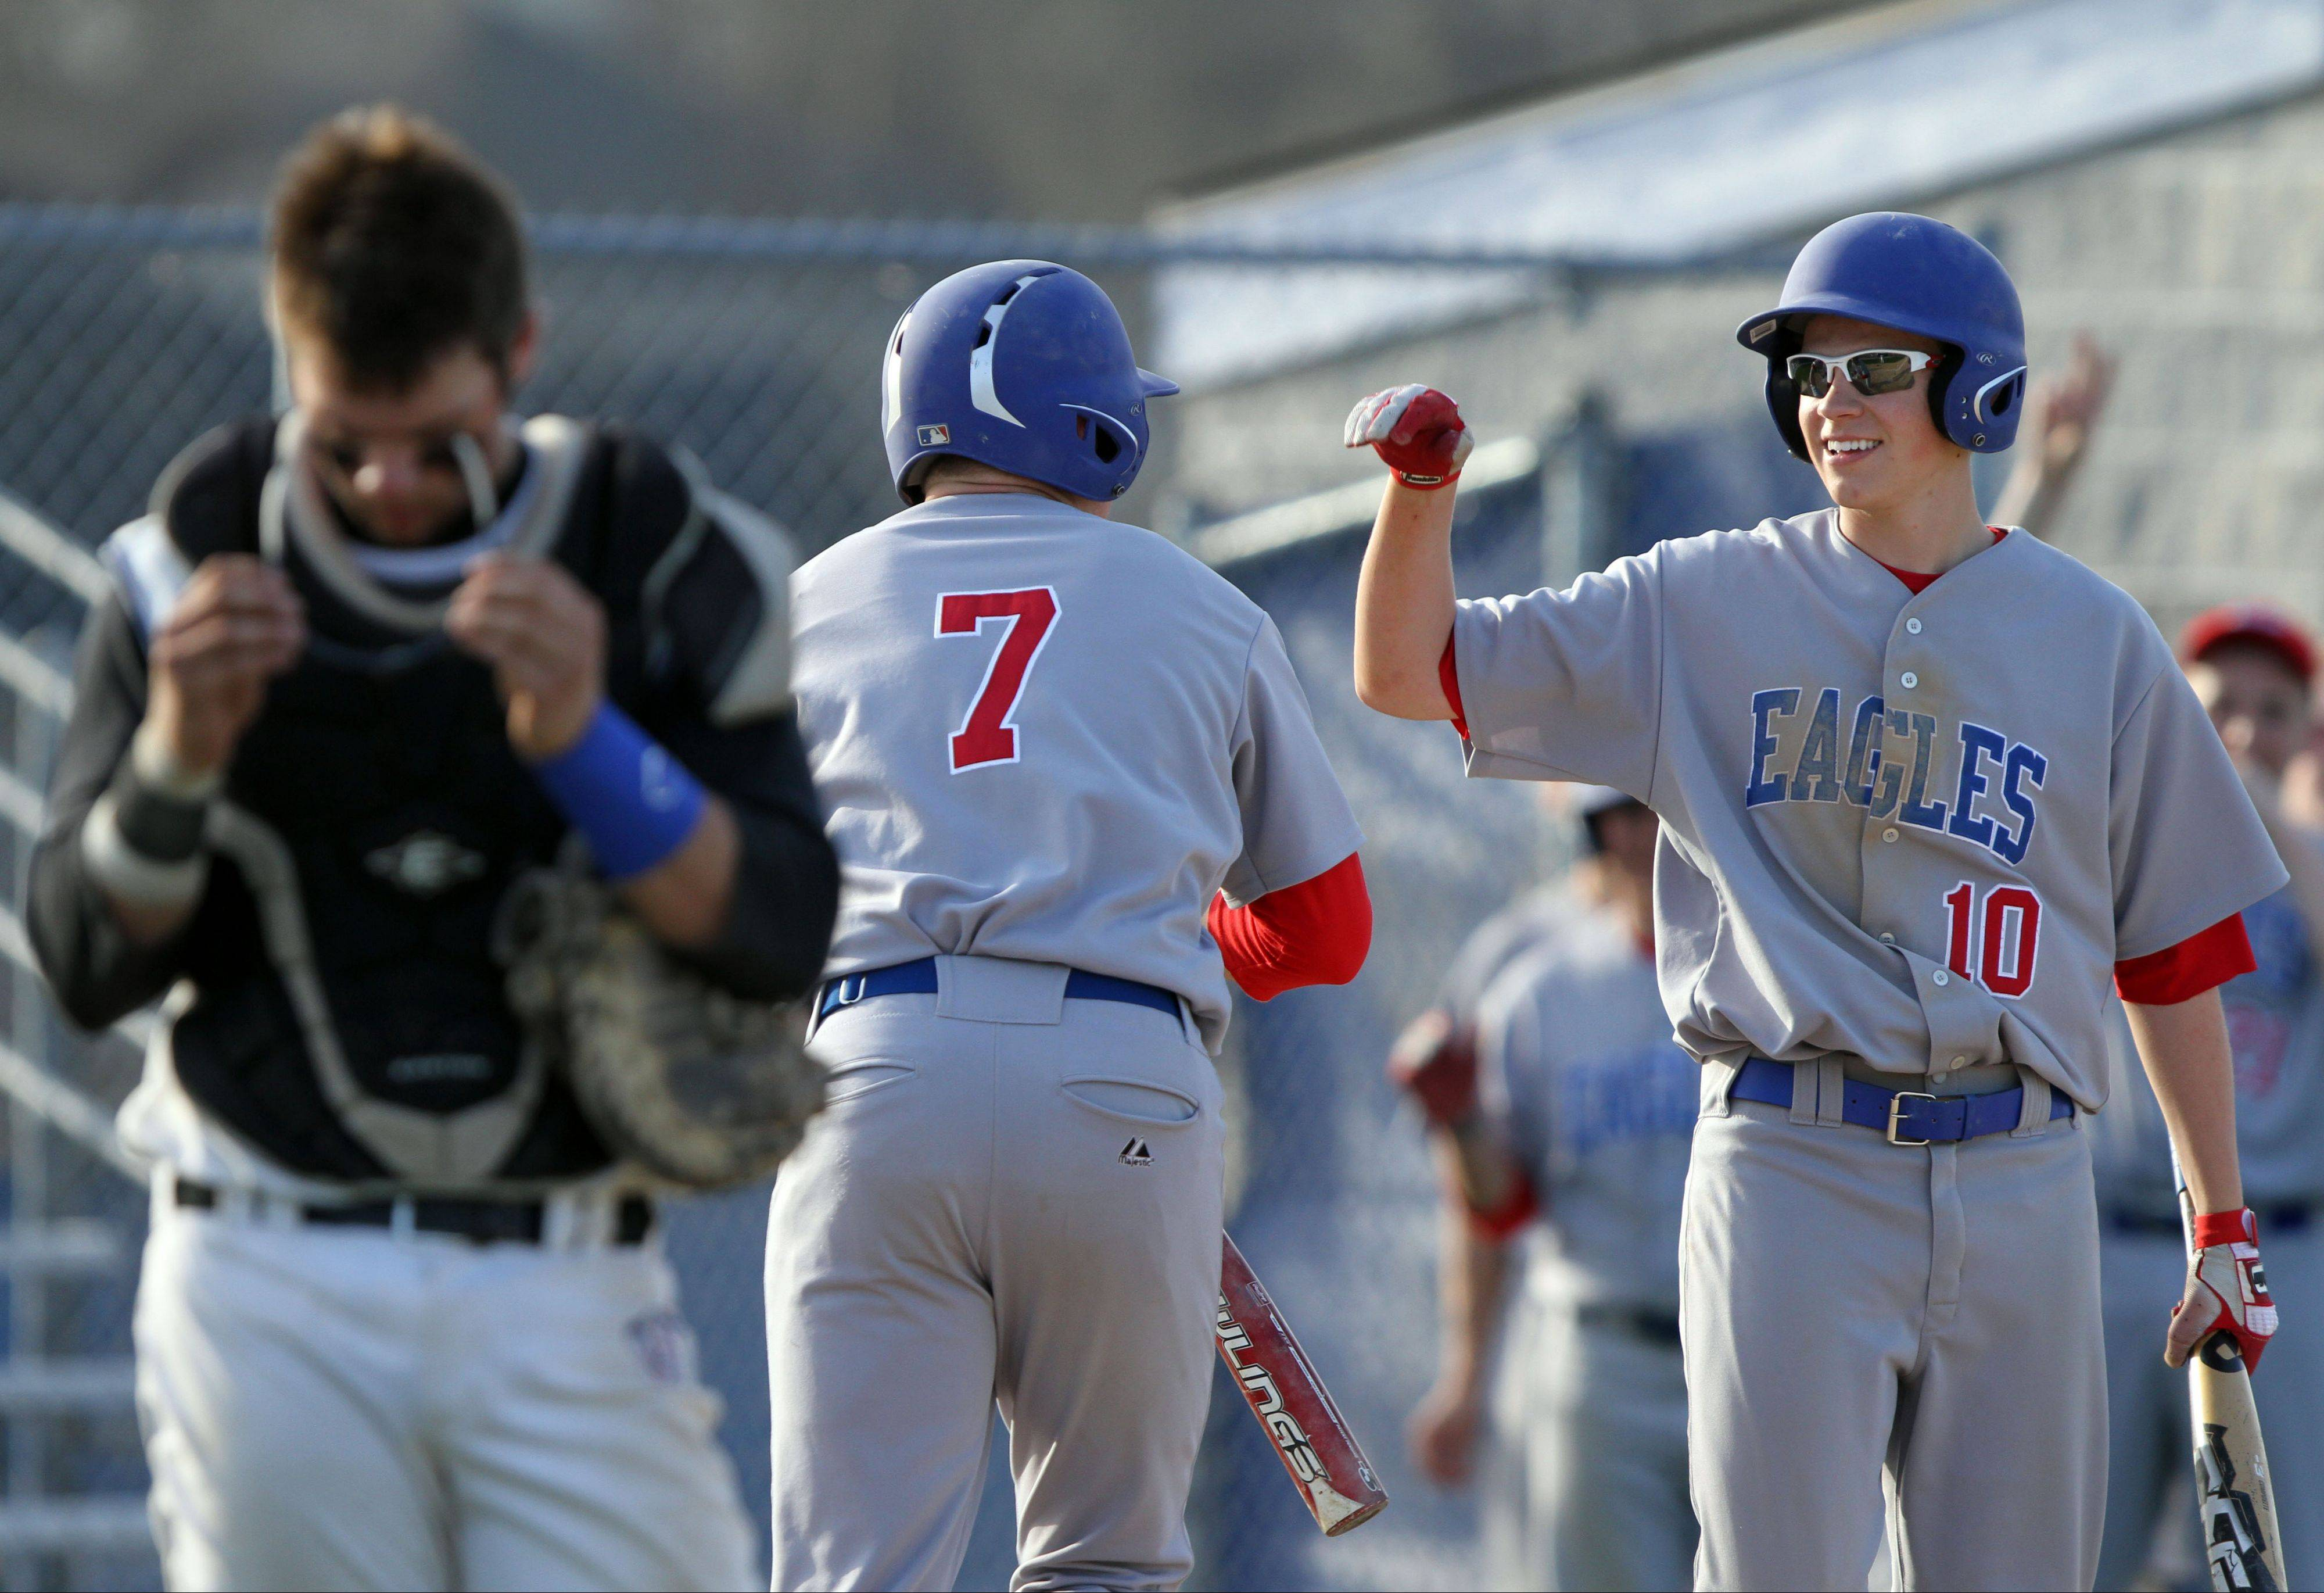 Lakes' Nick Seketa, left, congratulates Eric Kuhlmann after scoring Tuesday at Lake Zurich.